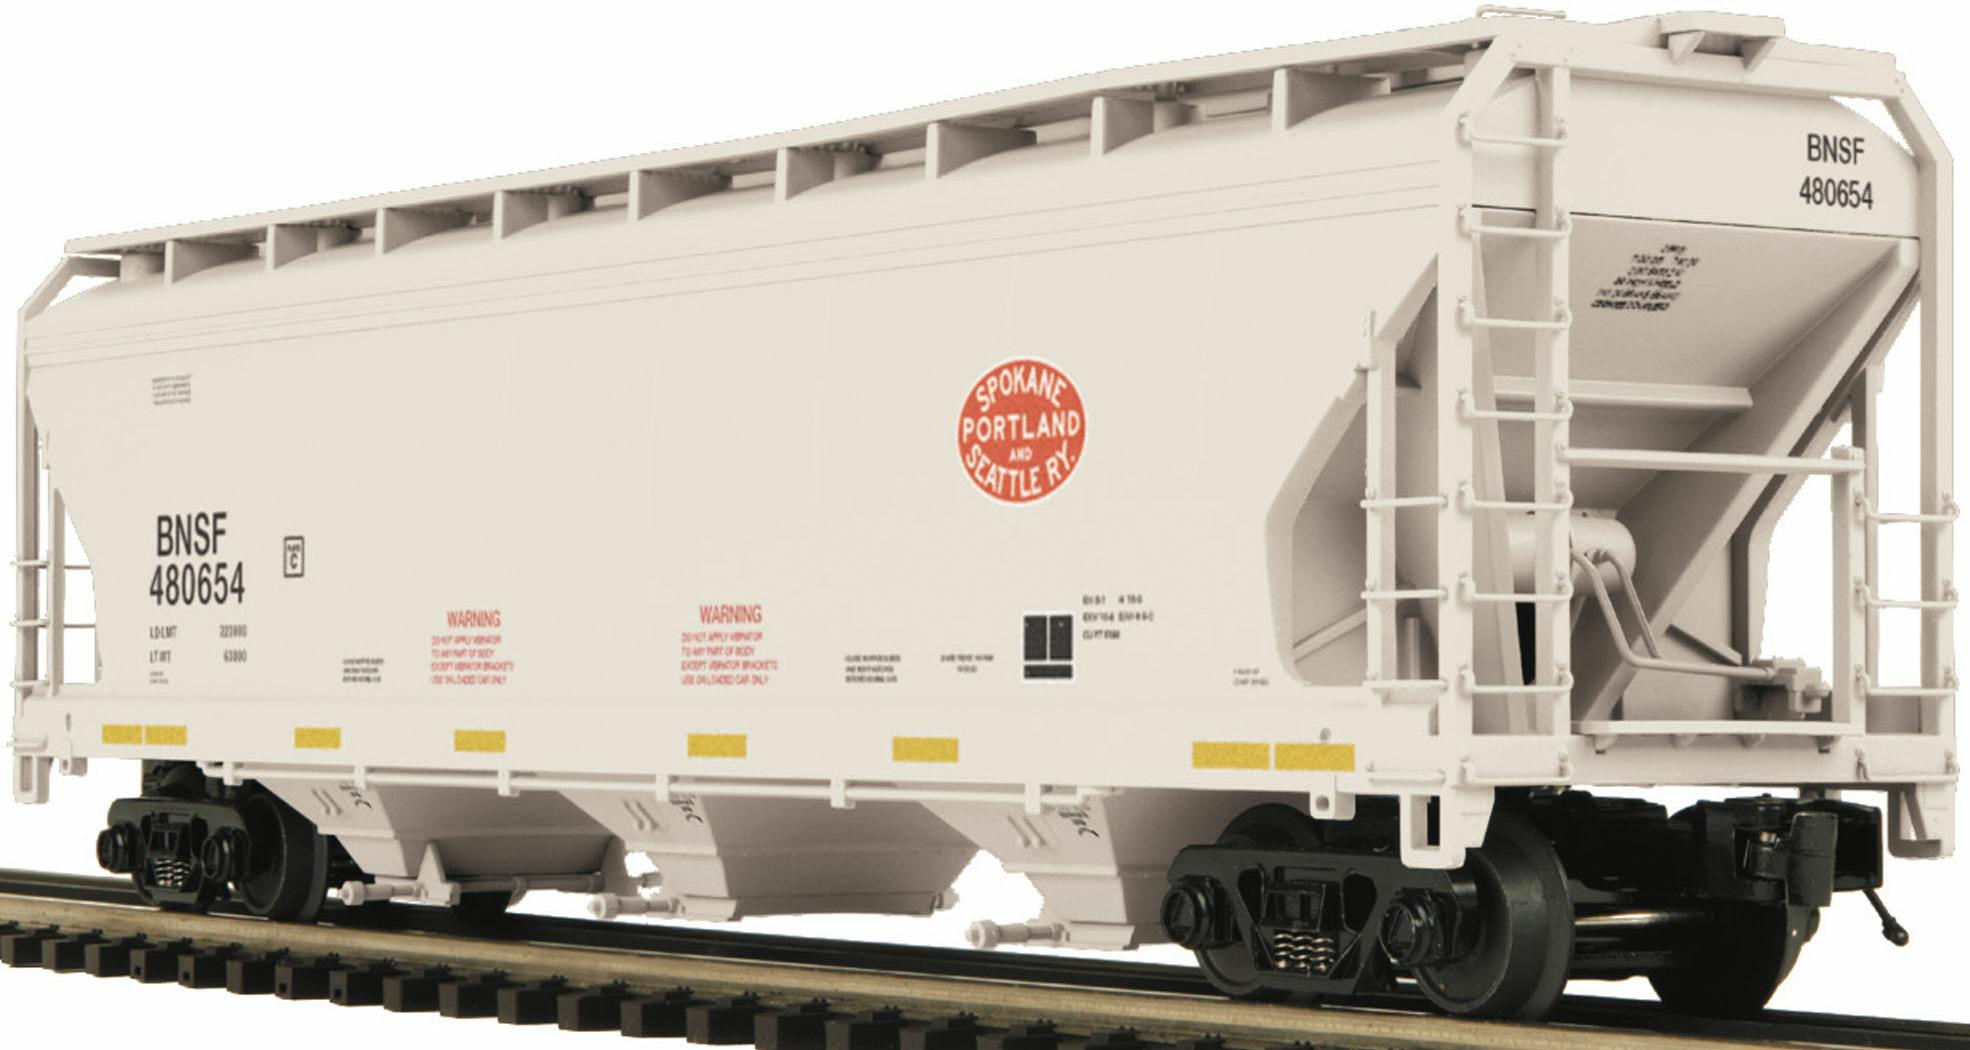 BNSF (SPamp;S) 3-Bay Center Hopper image